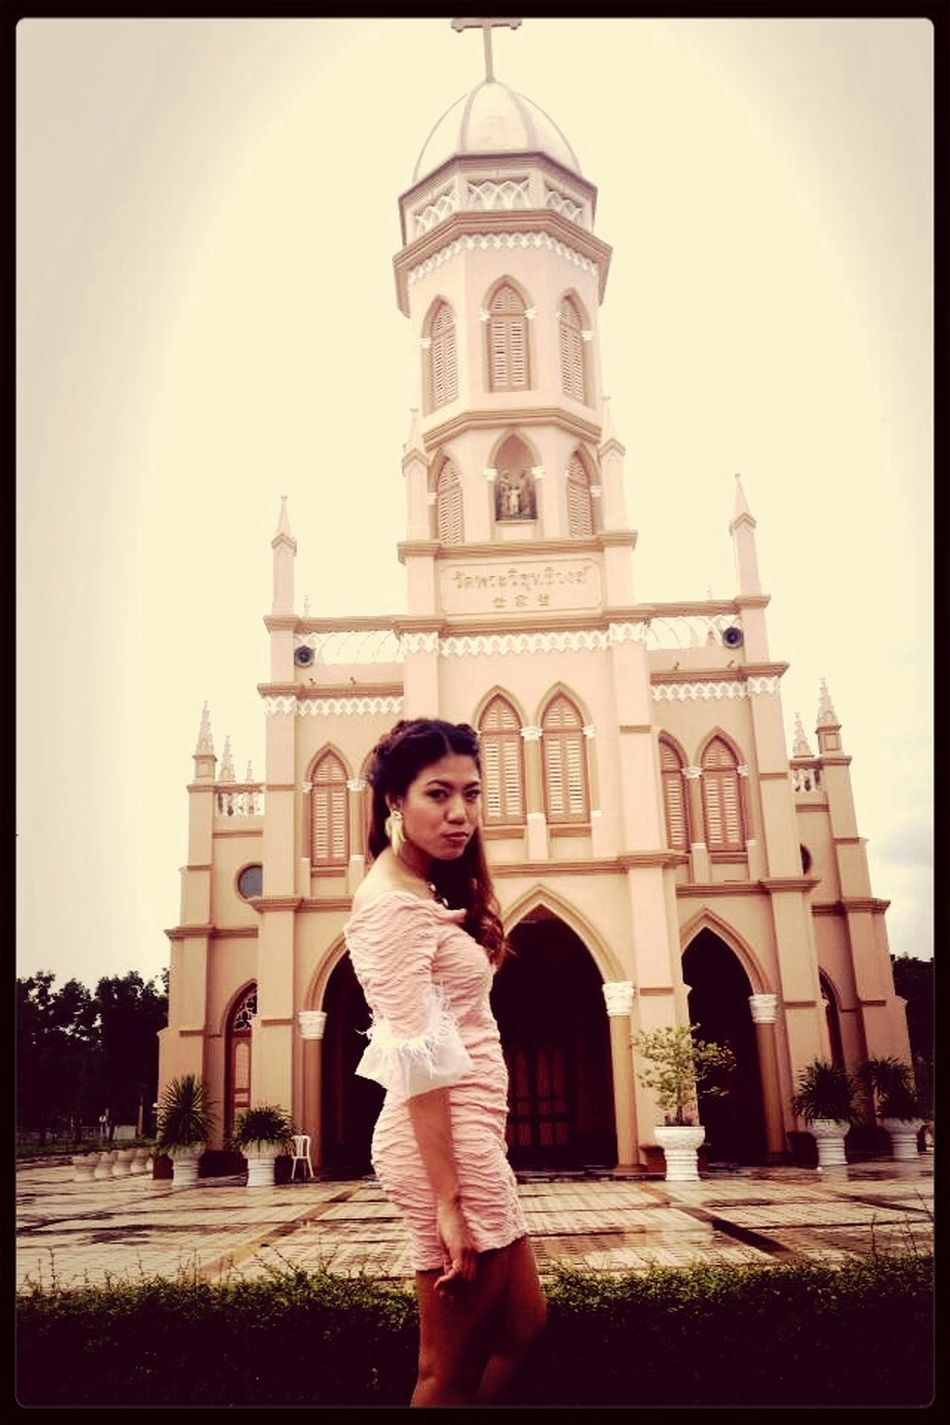 wann marry at here:) will you marry me??lol Happyness